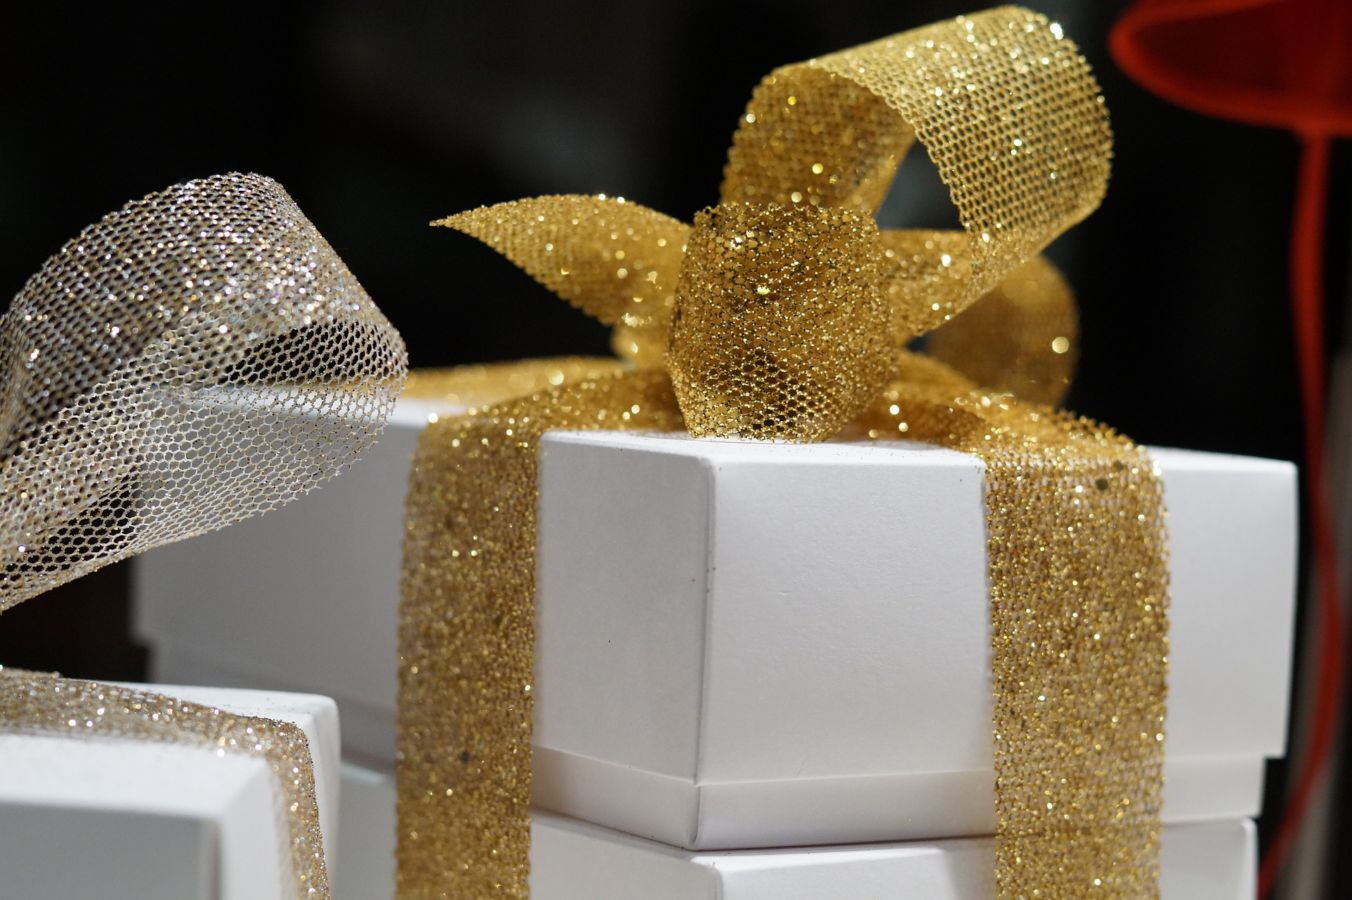 gifts-1622996_1920